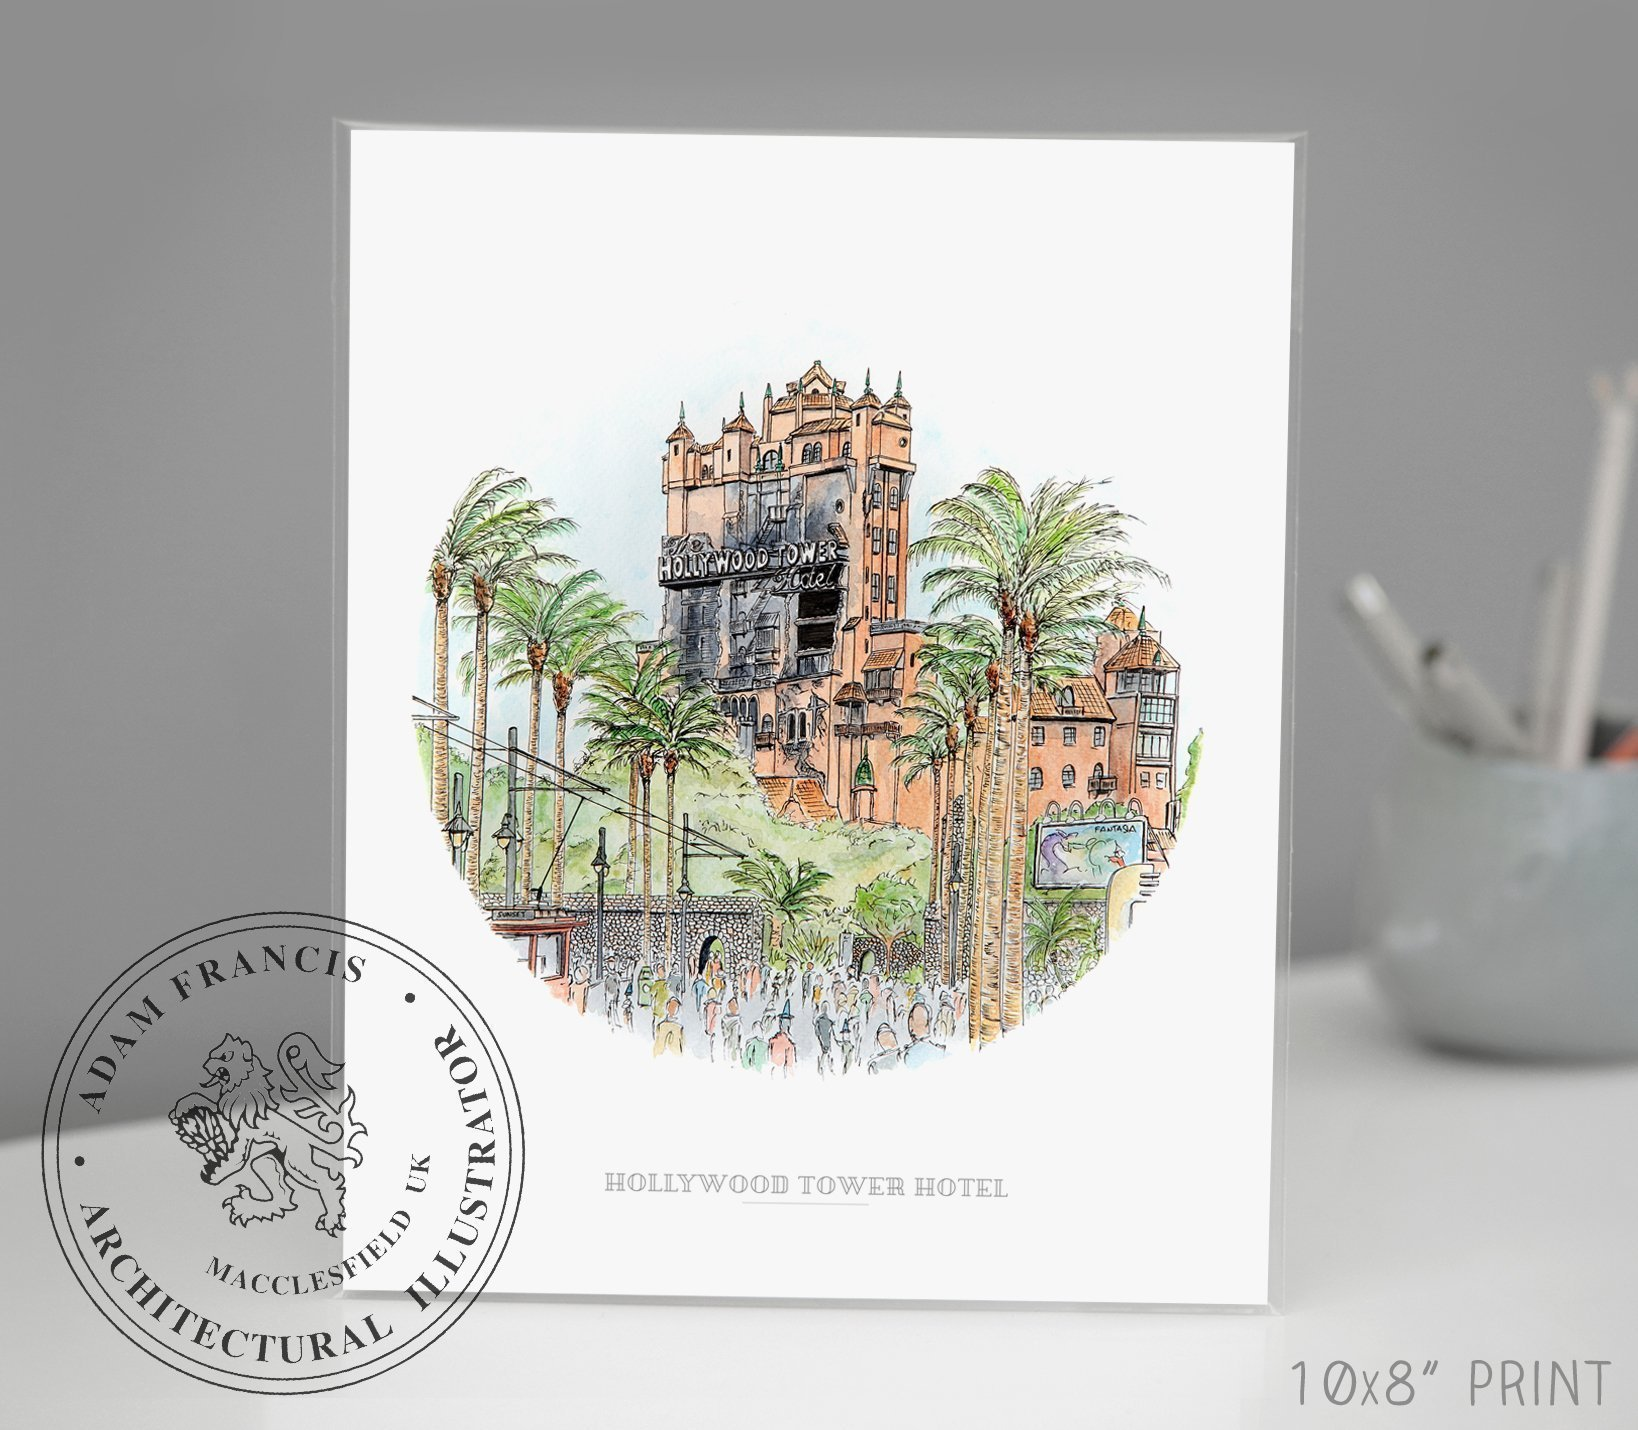 Hollywood Studios | Hollywood Tower Hotel | Art prints | Home Decor | Wall Art. High Quality Prints taken from my Original Detailed Illustration & Watercolor.